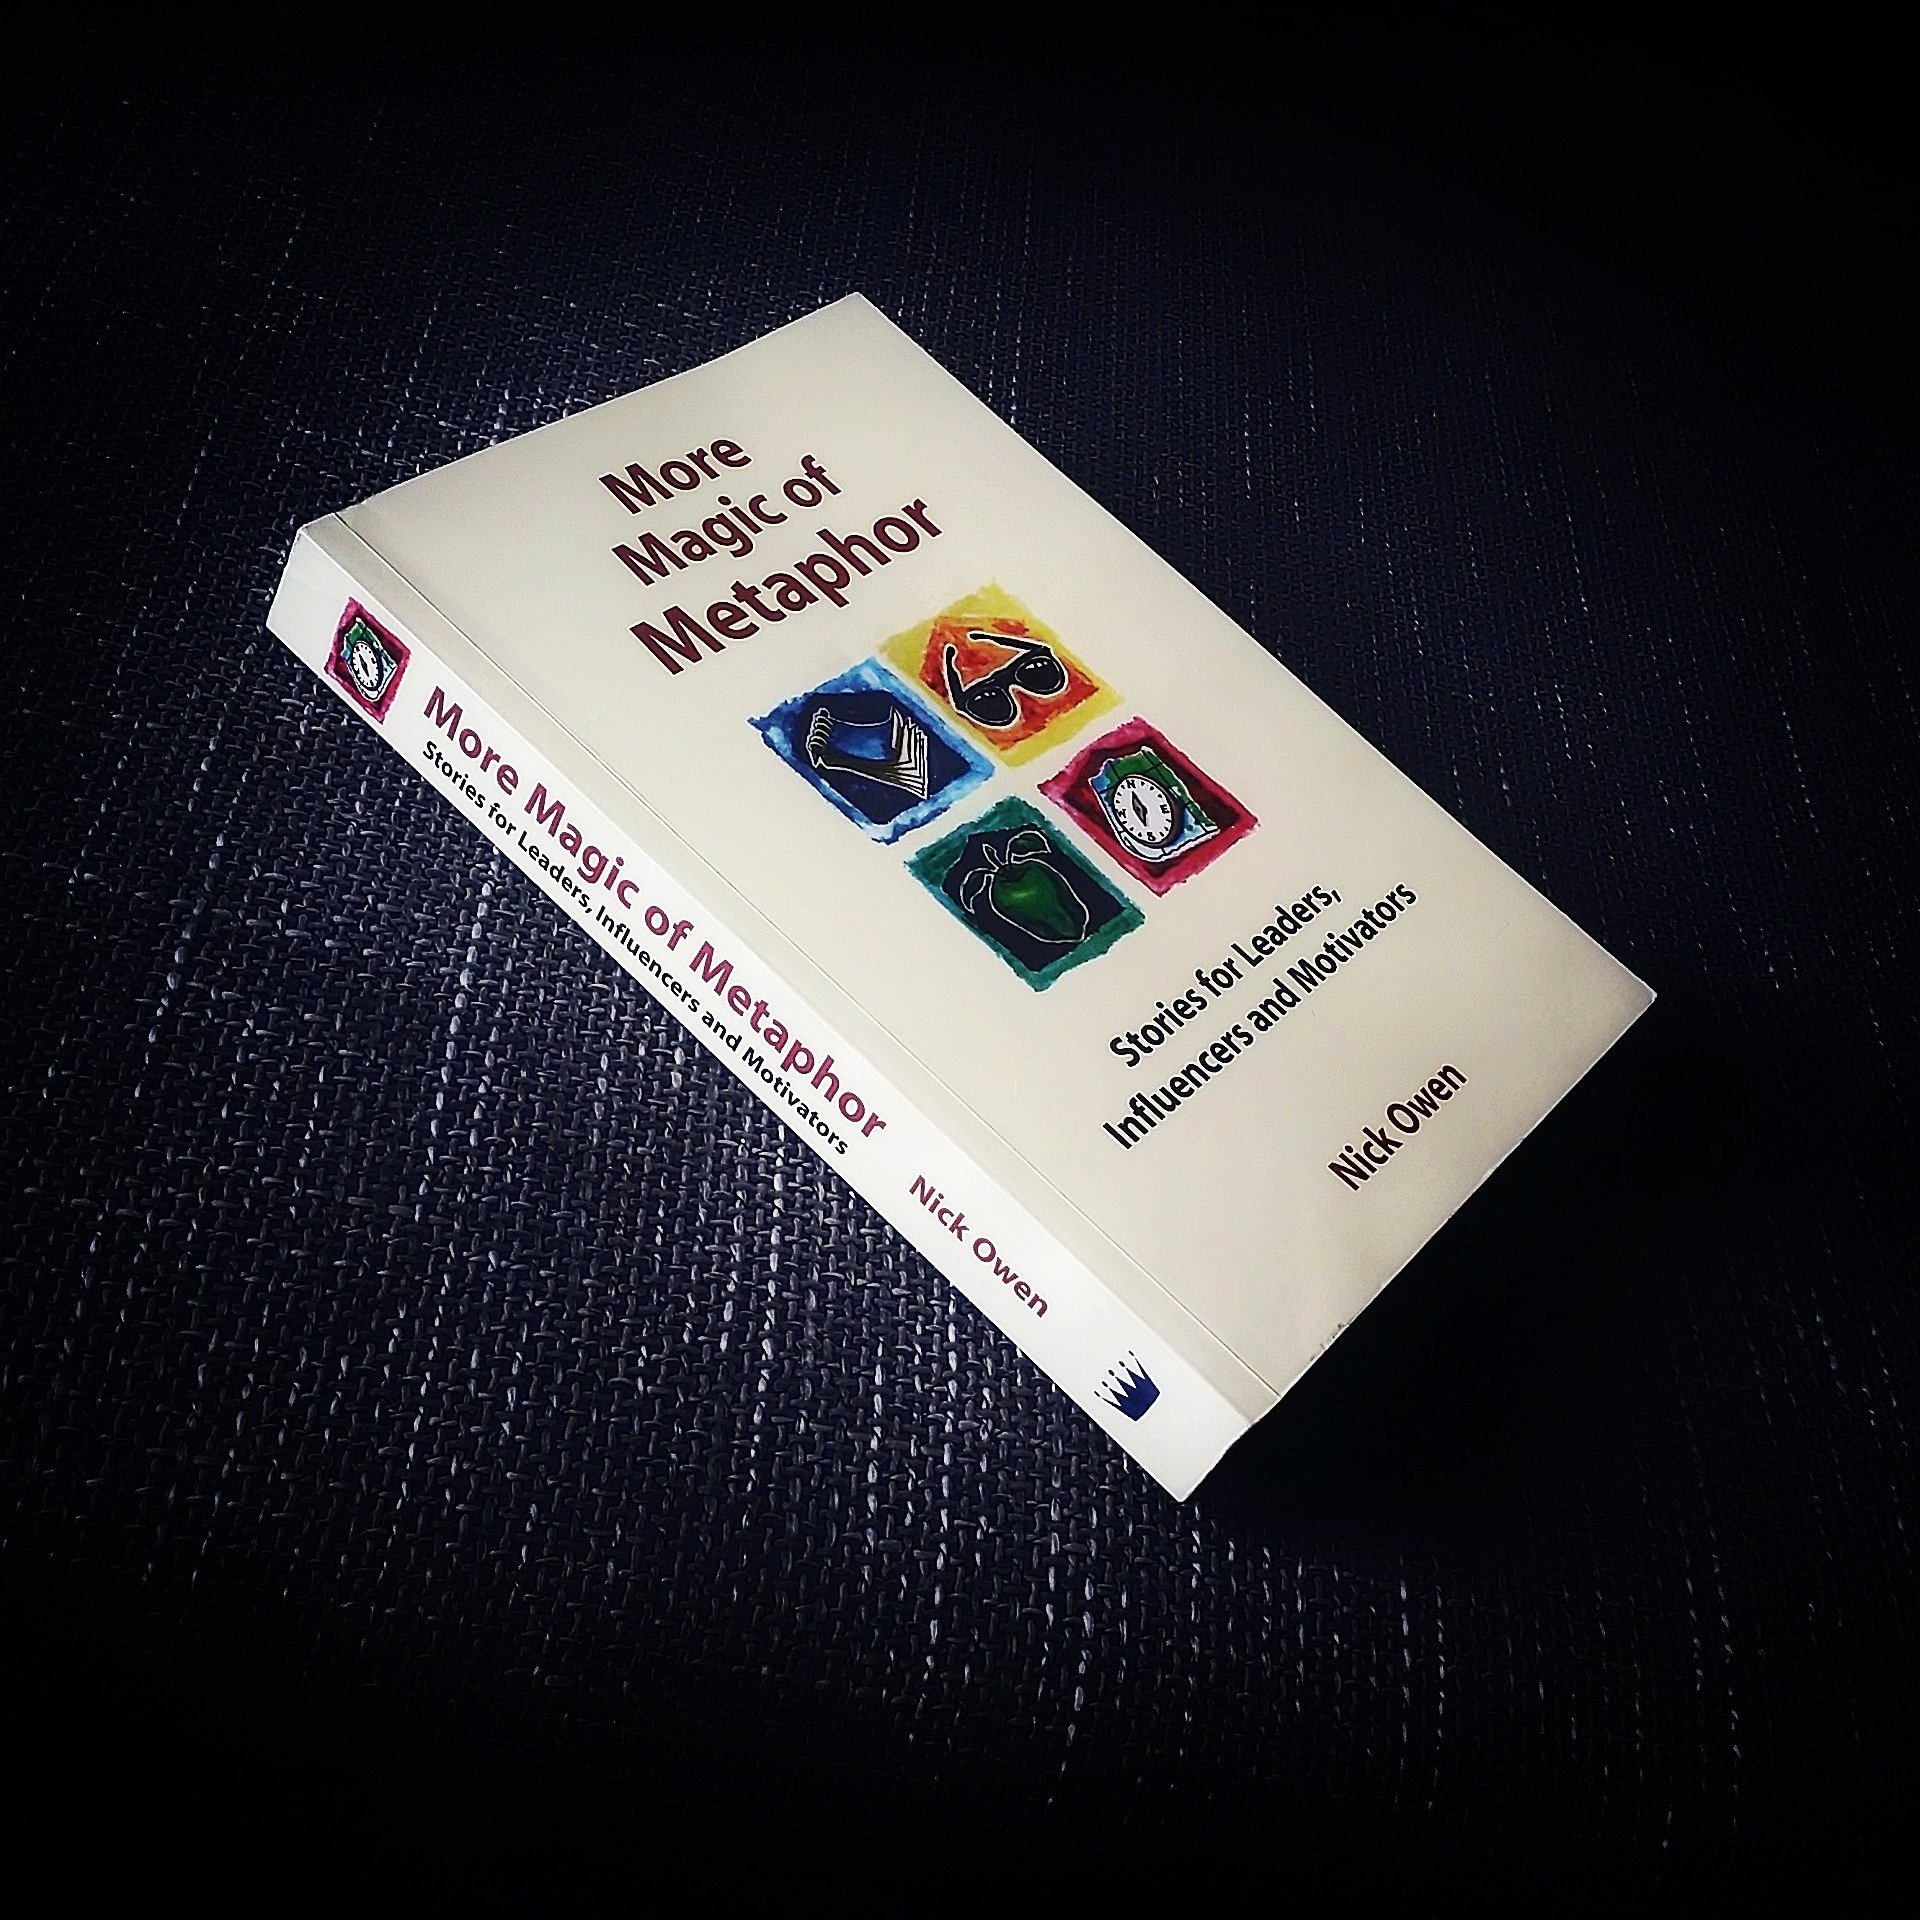 Book Review More Magic Of Metaphor By Nick Owen border=